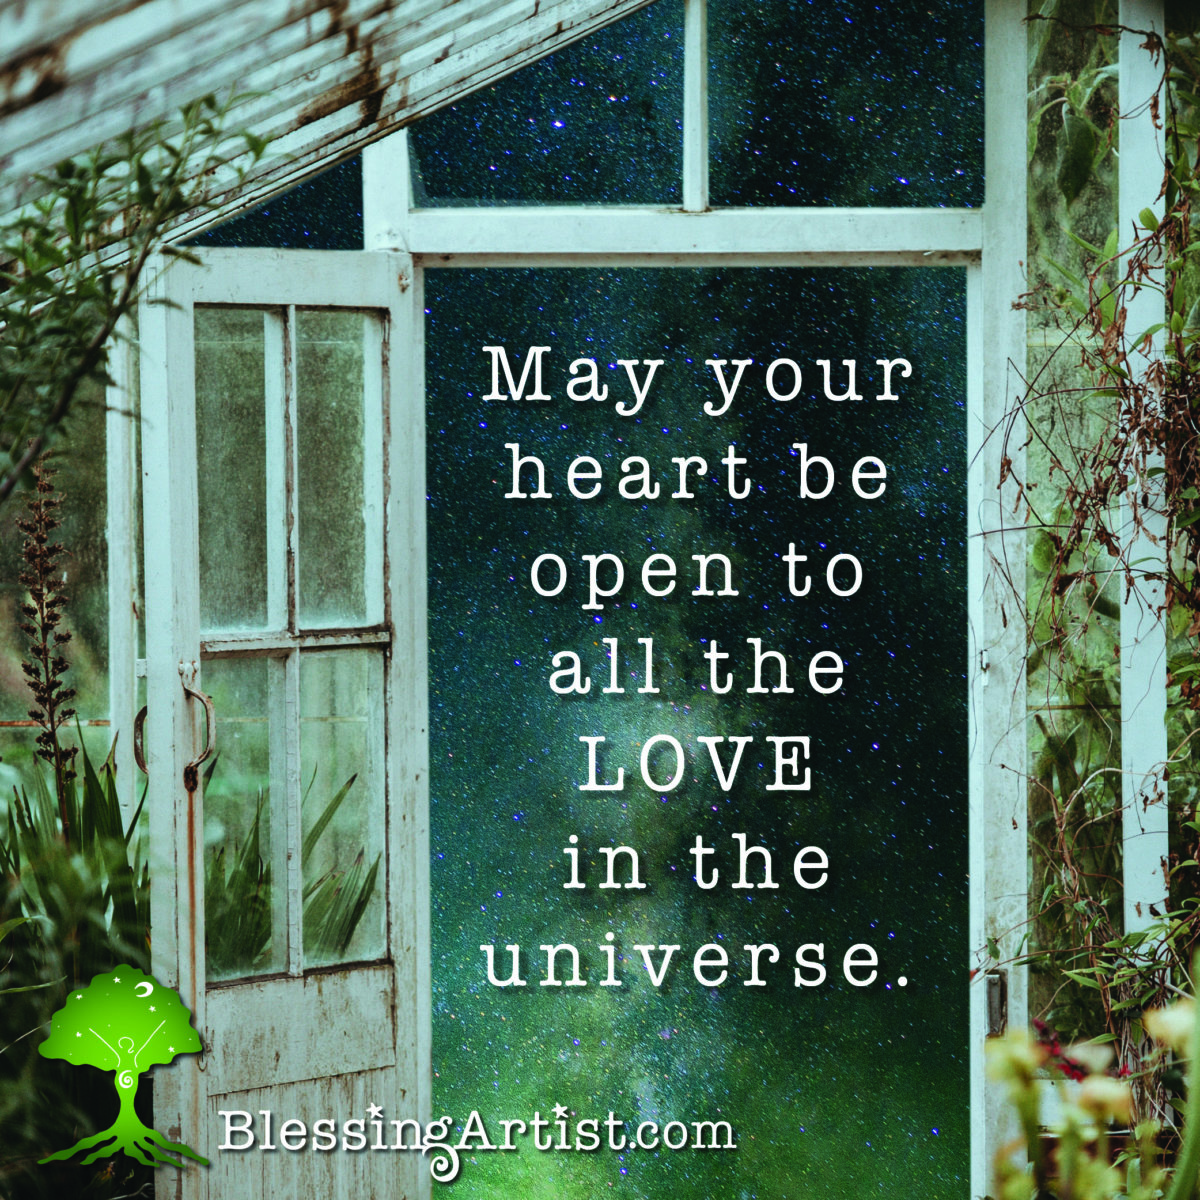 """Image of a greenhouse door opening to the starry universe with words """"May your heart be open to all the love in the universe."""""""